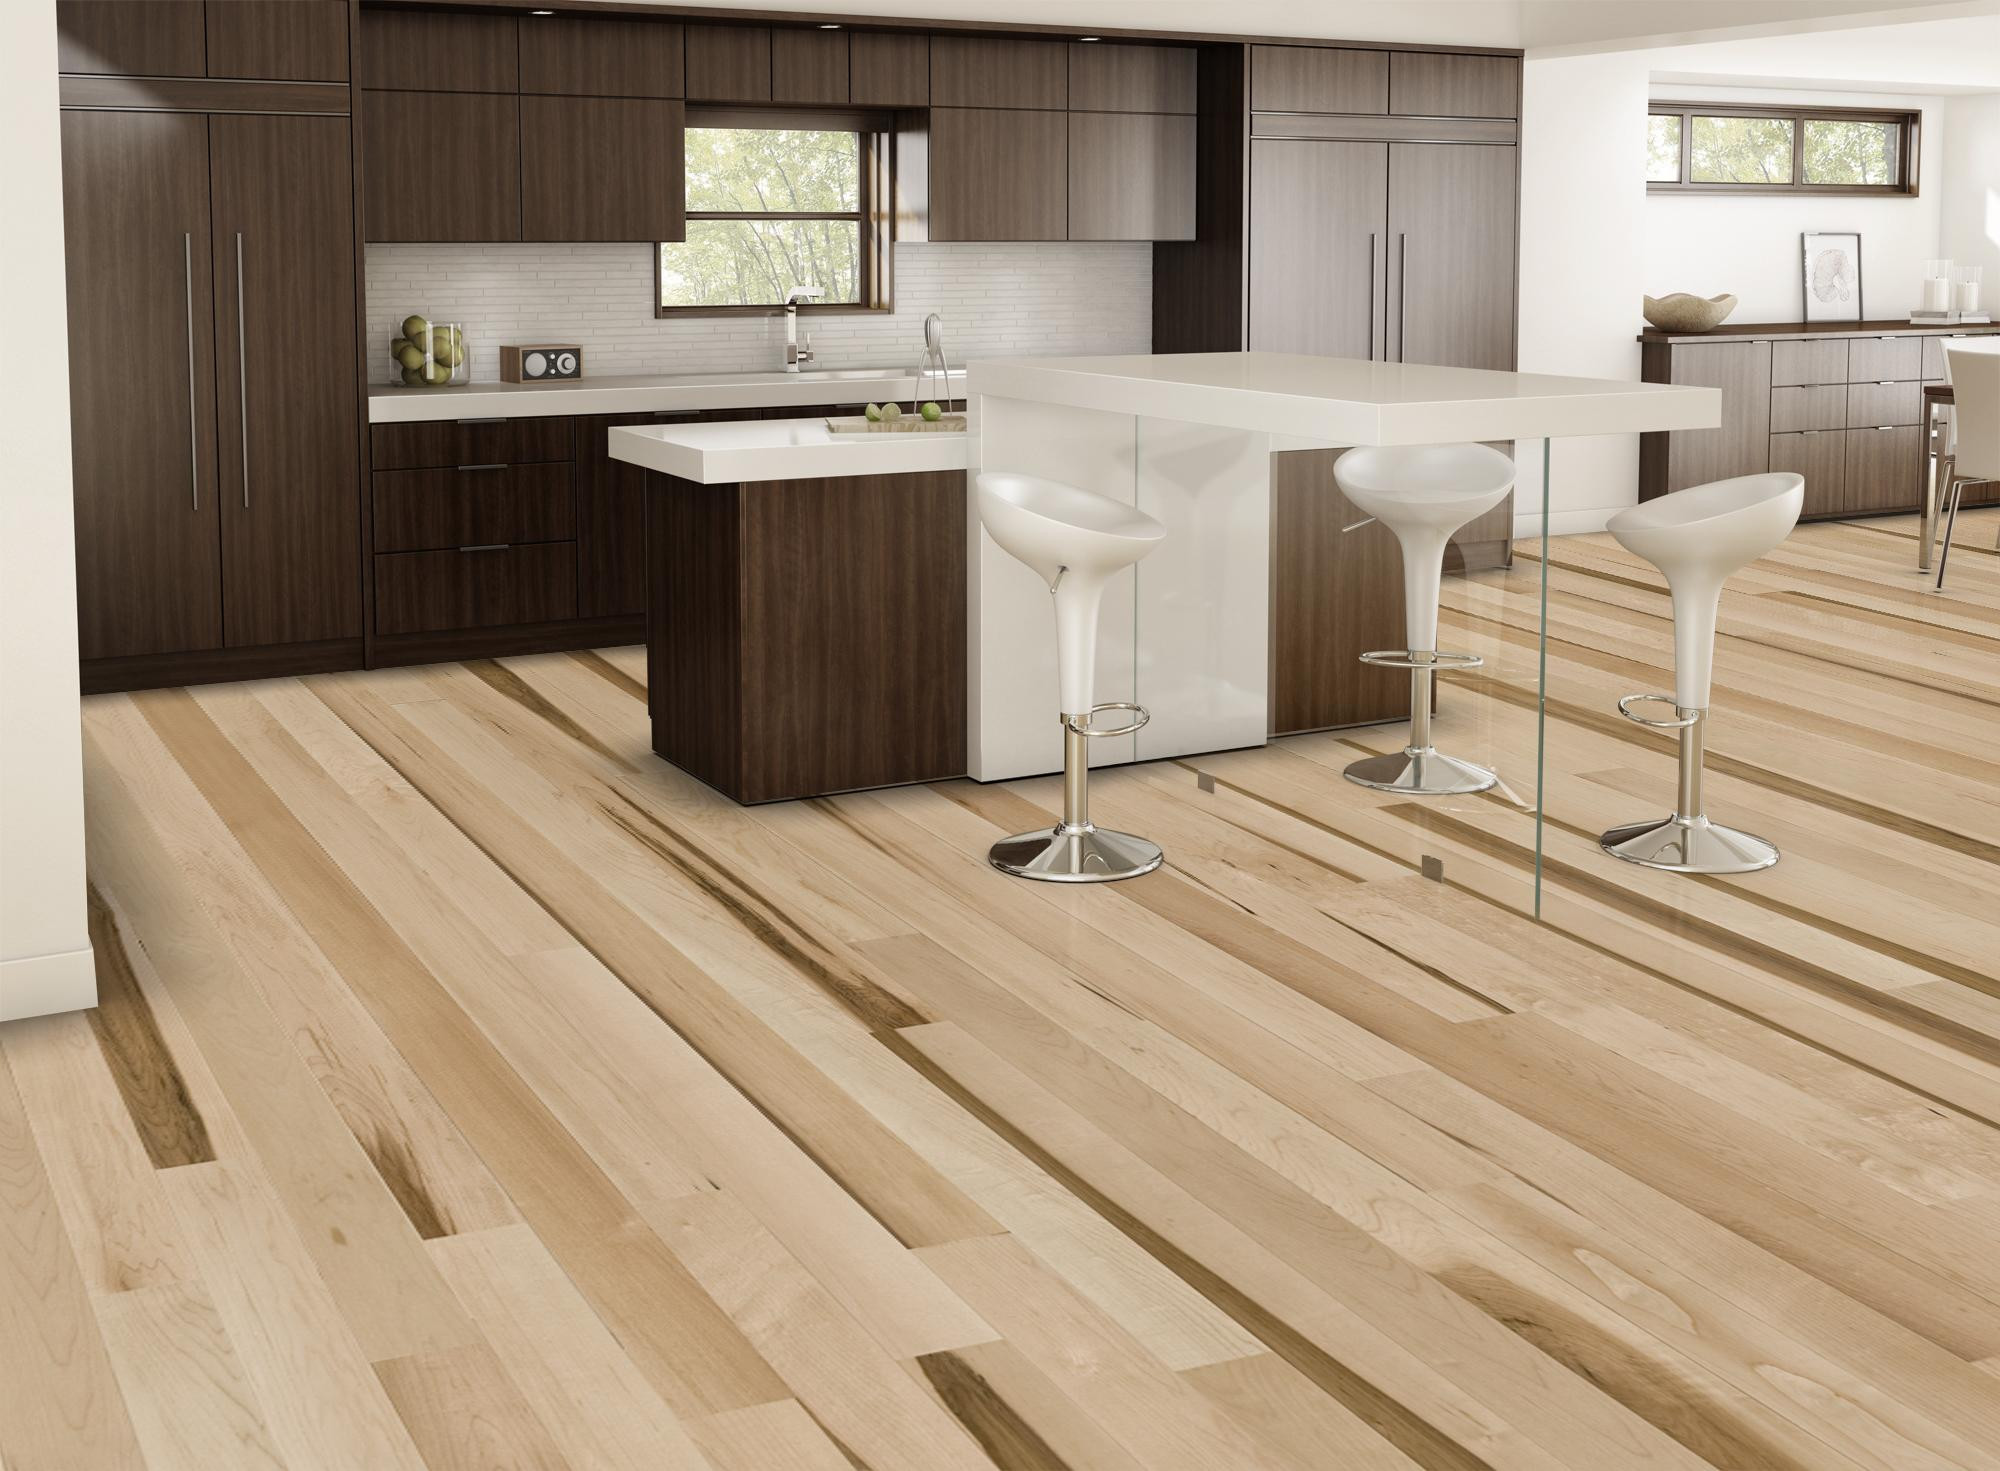 3 4 inch hardwood flooring prices of kingsmill natural maple 4 wide 3 4 solid hardwood flooring for kingsmill natural maple 4 wide 3 4 solid hardwood flooring room